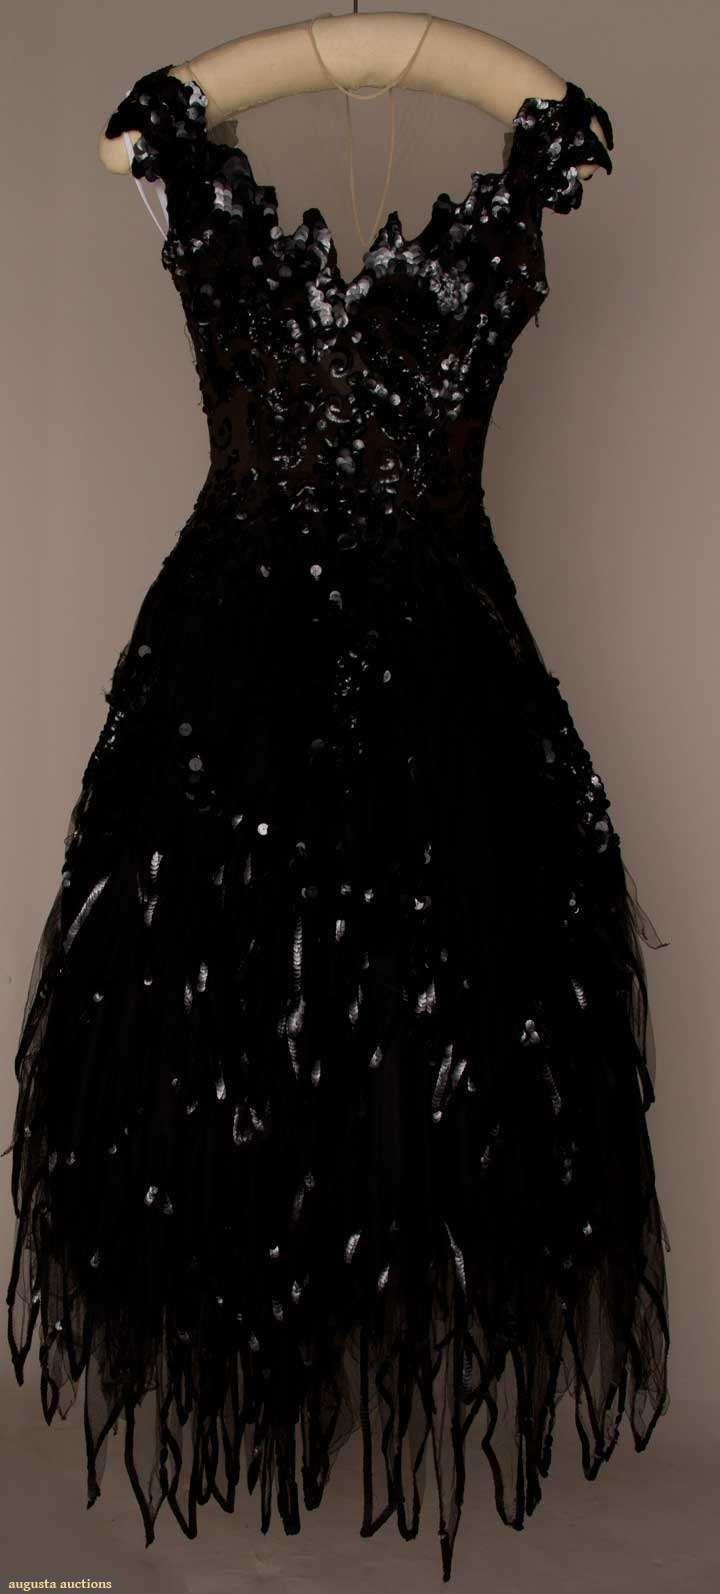 Howard Greer Tulle Ballgown, 1951, Augusta Auctions, March 21, 2012 NYC, Lot 309